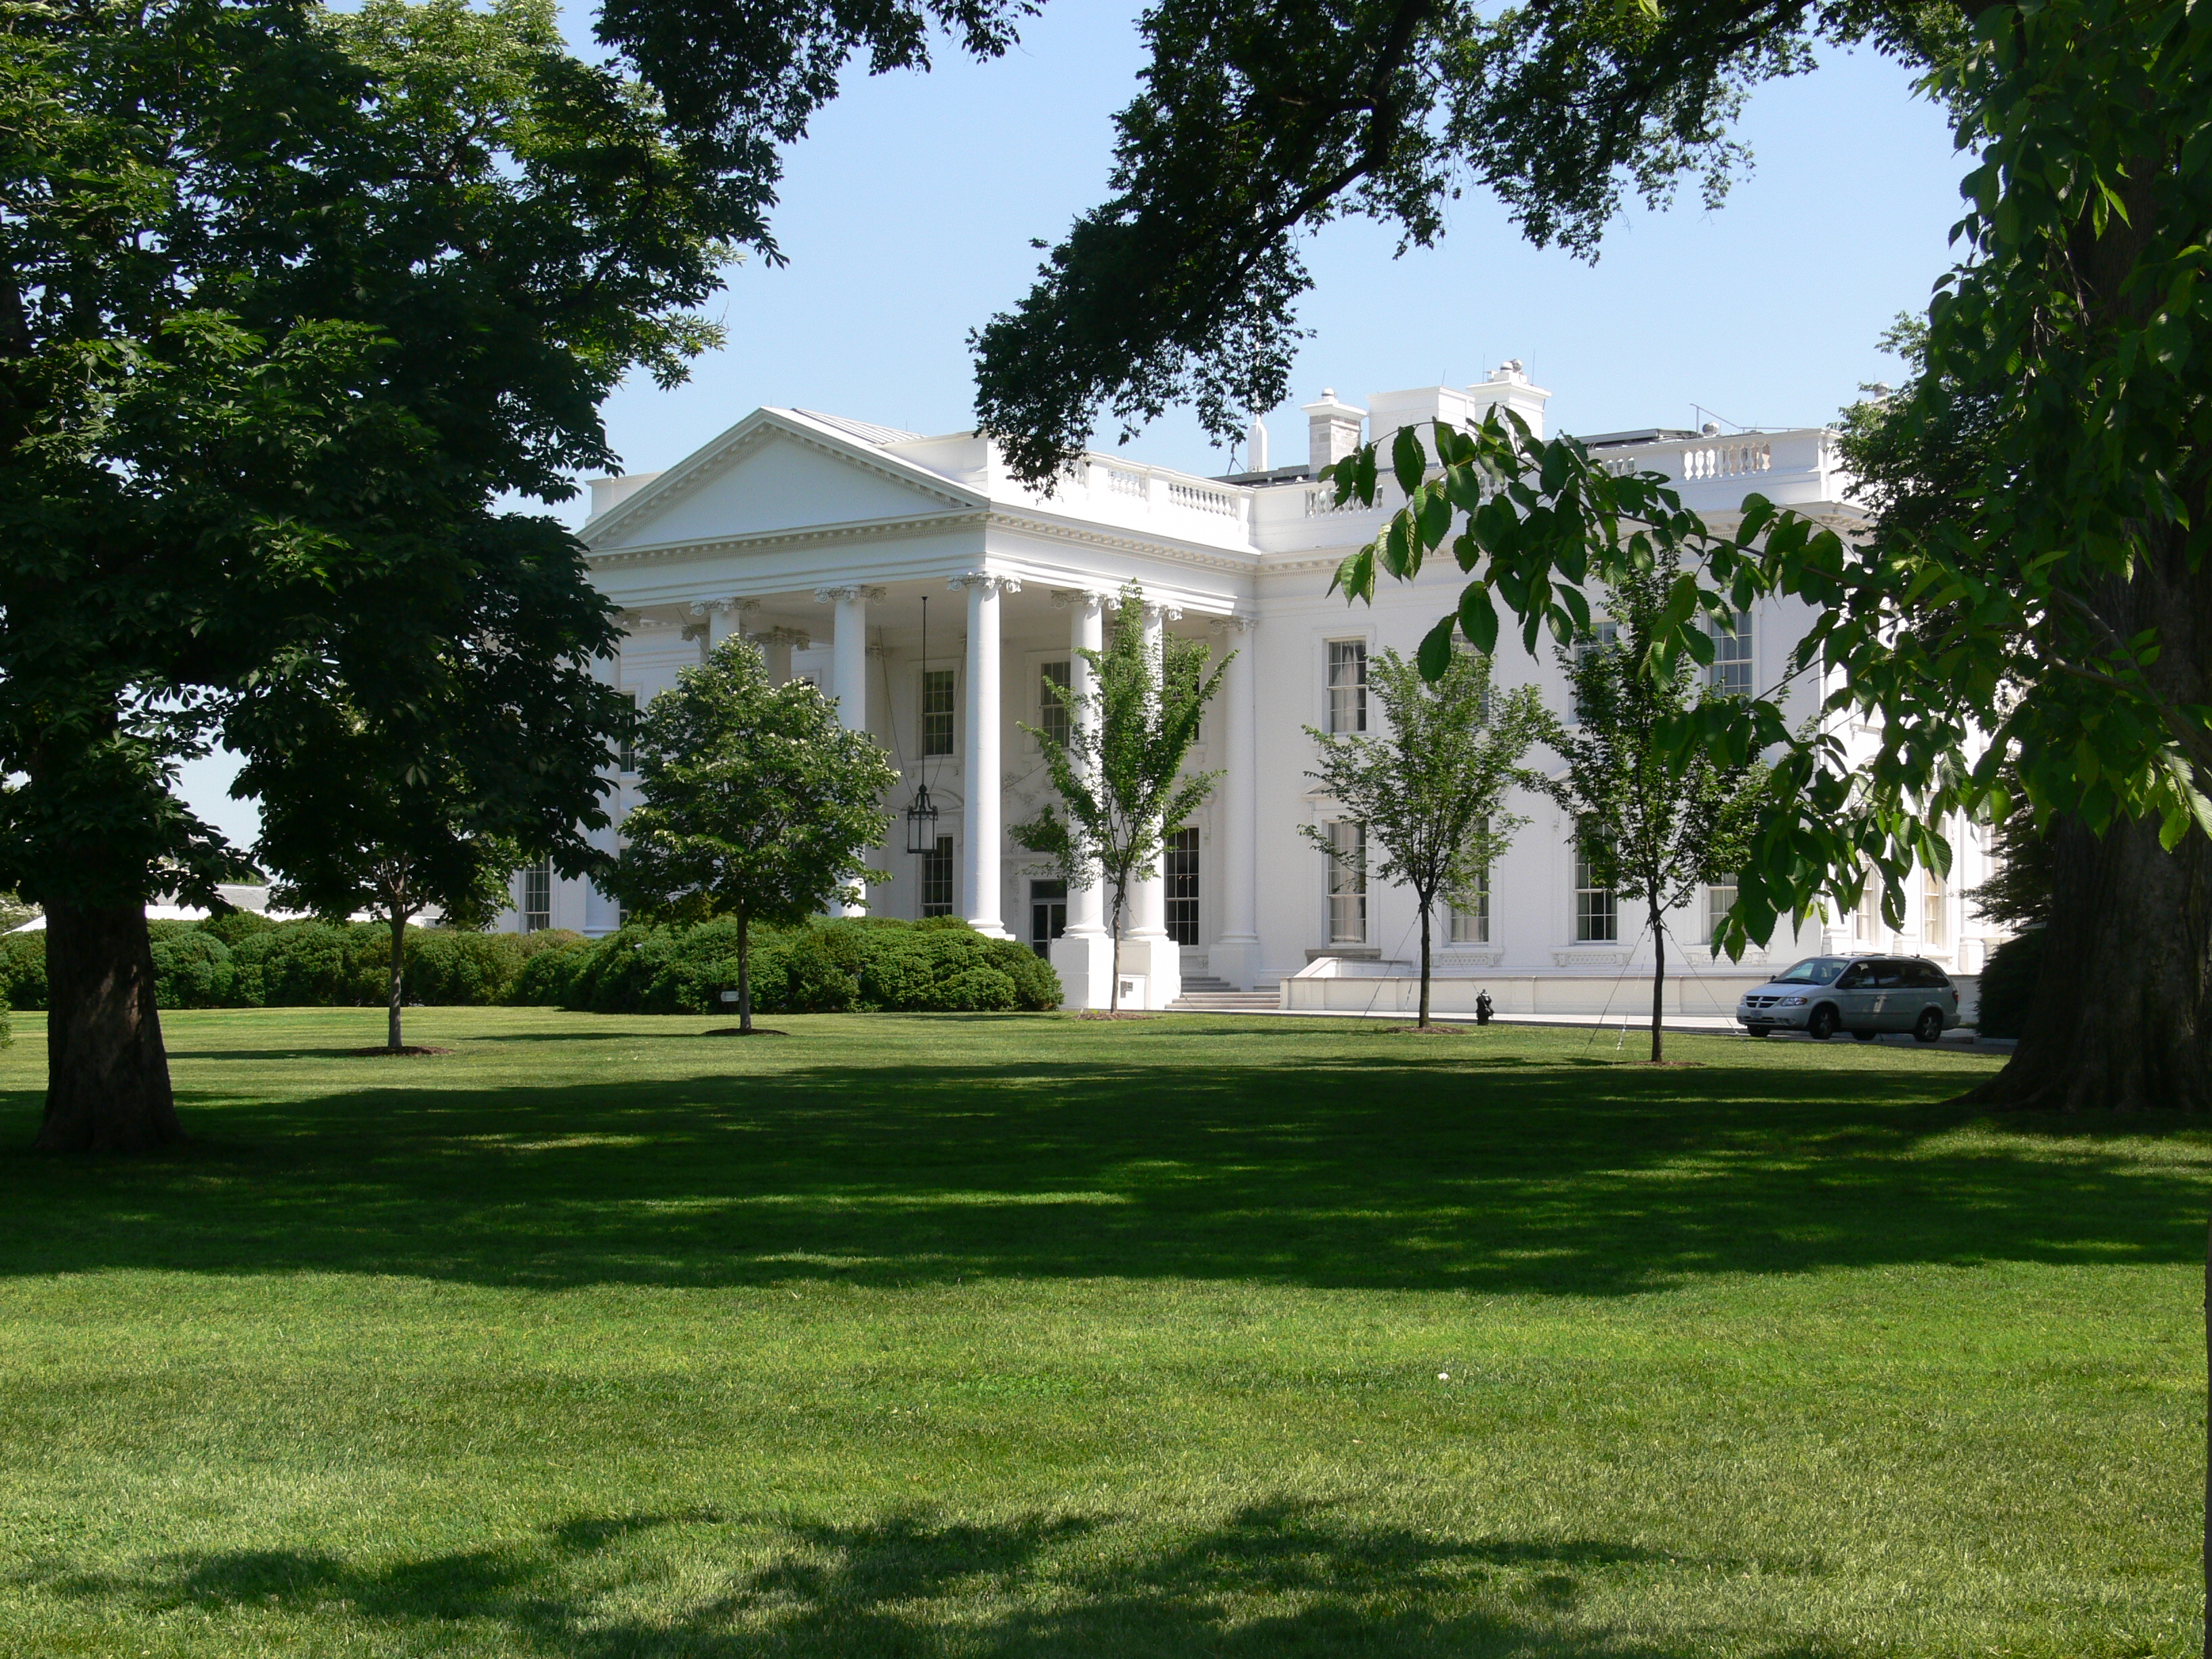 whitehouse dating site Whitehousecom was a porn site probably the most recognized government building in the world is the white house in washington dc so it would make perfect.